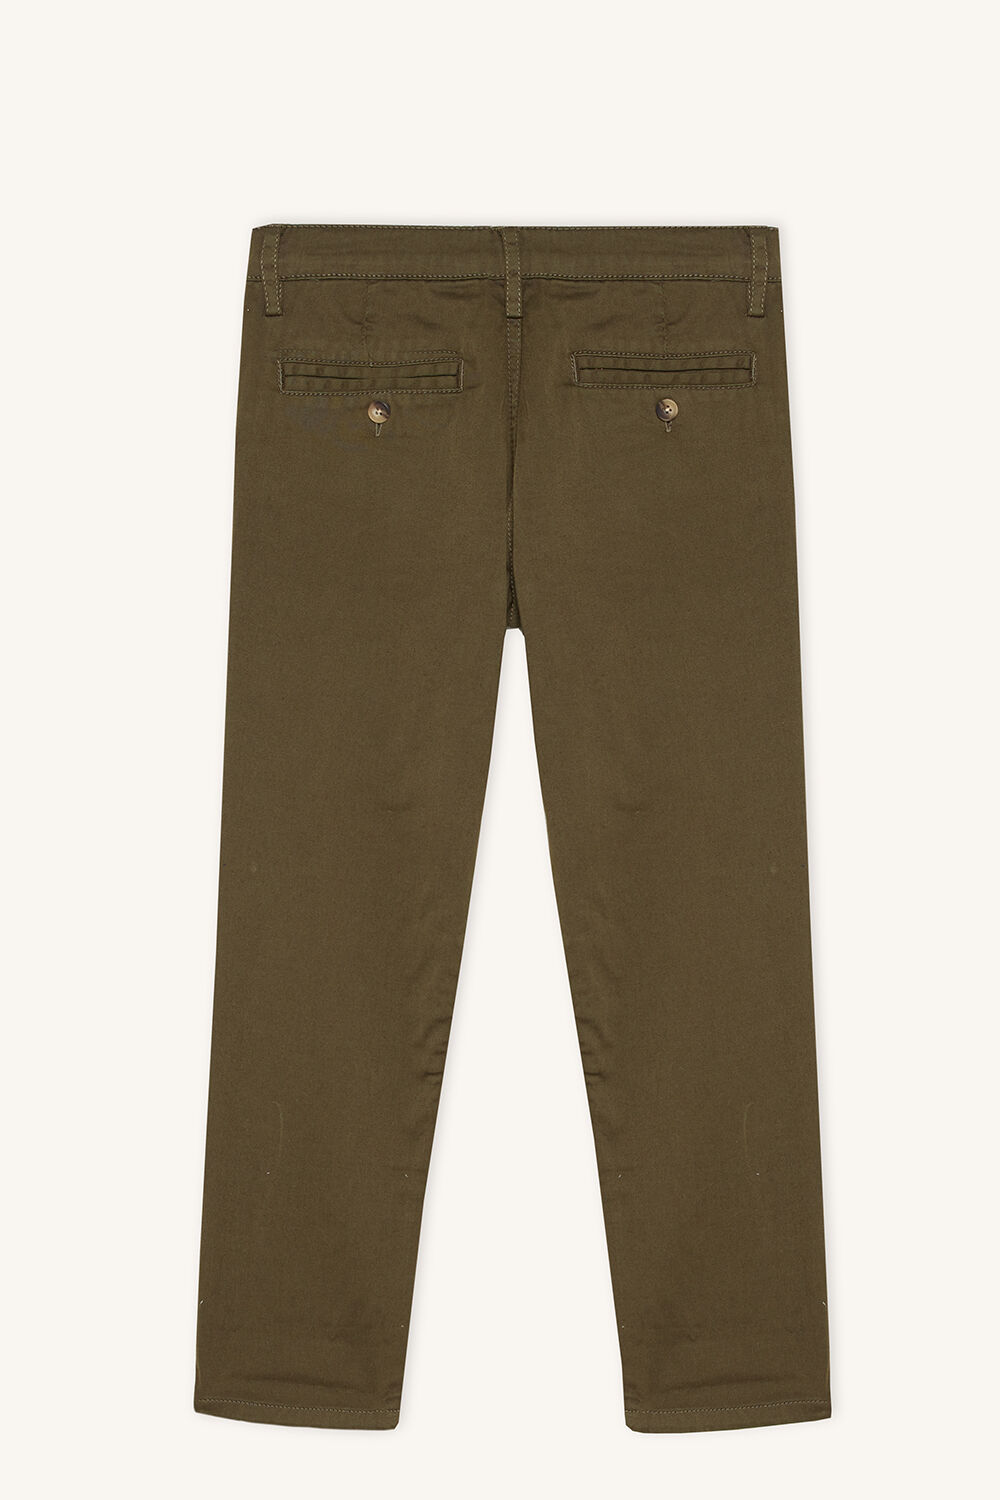 JACK CHINO PANT in colour OLIVE NIGHT